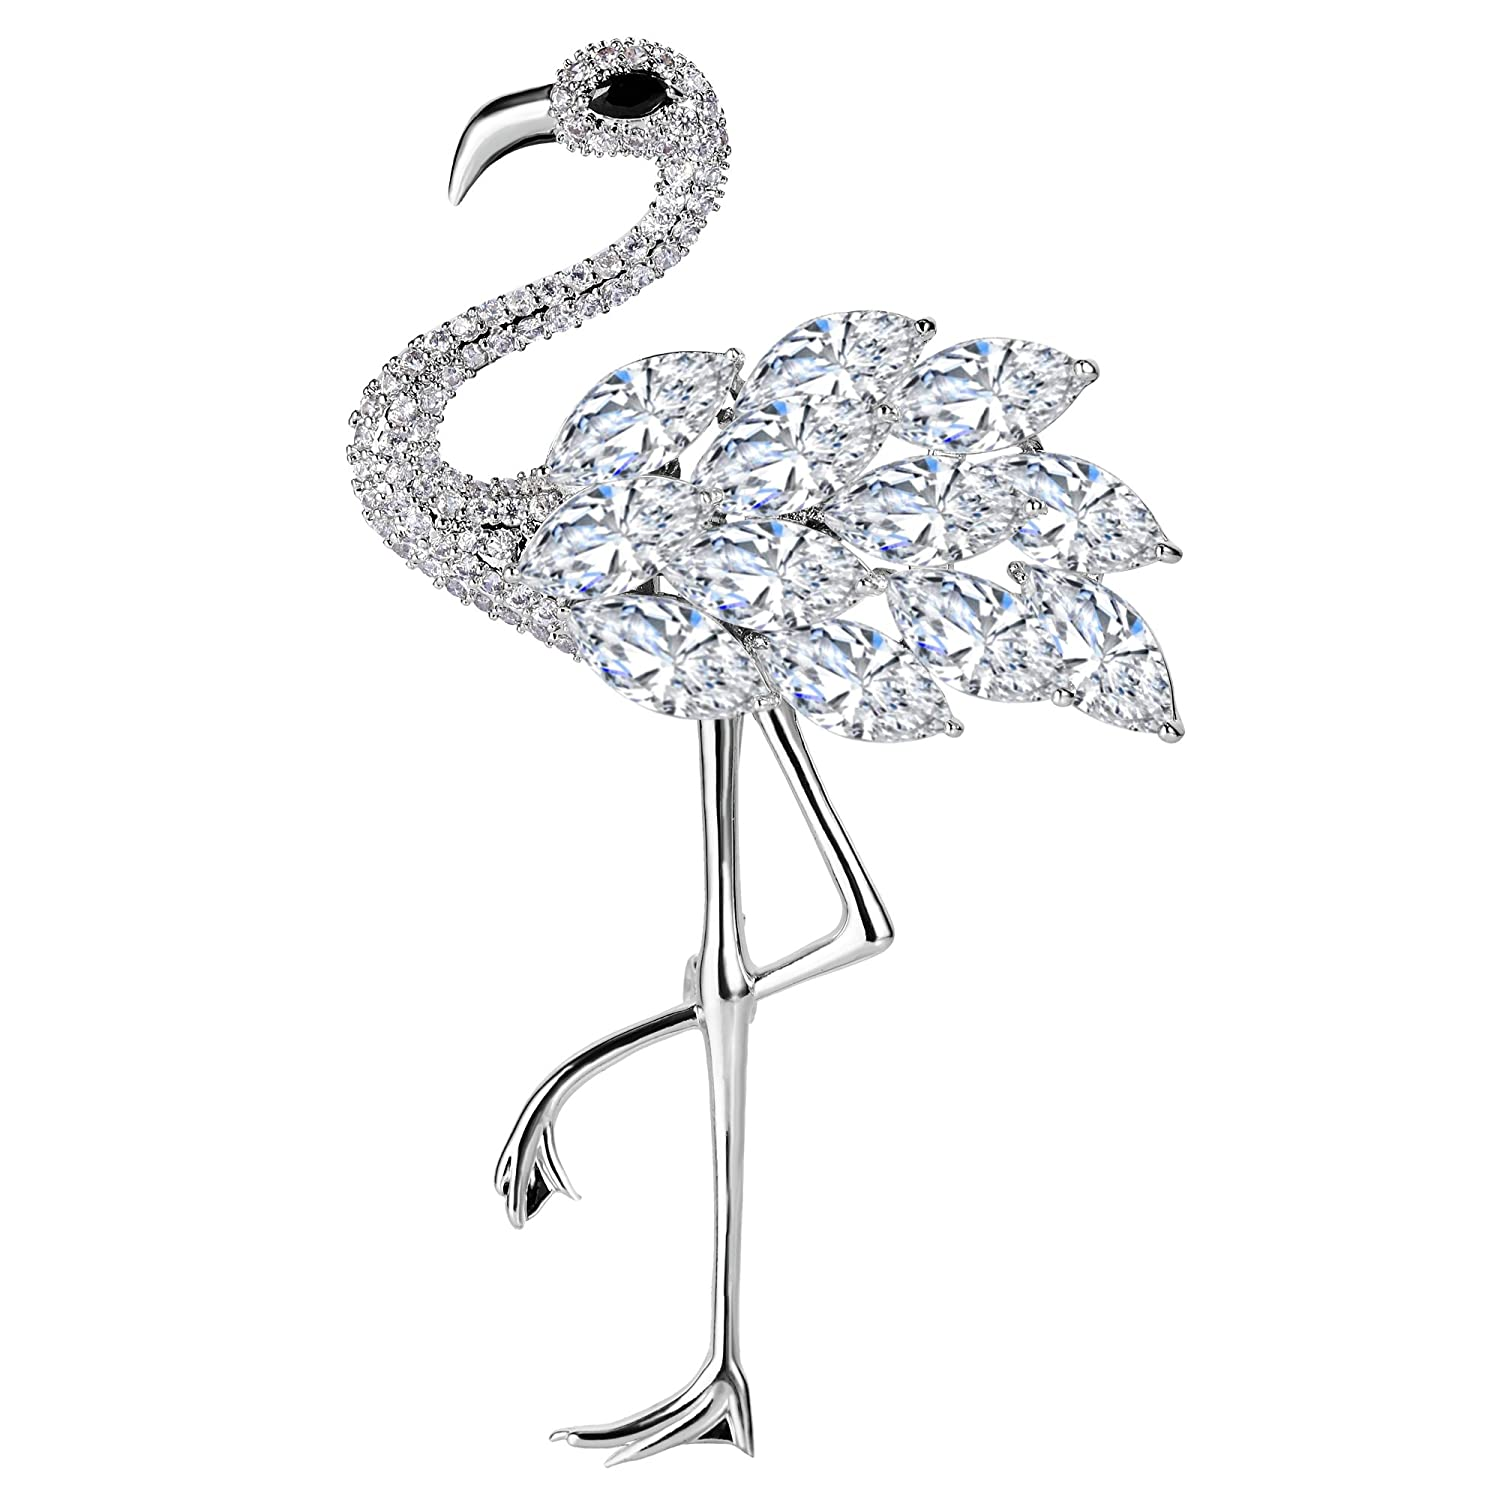 EVER FAITH Women's Full Zircon Gorgeous Elegant Flamingo Bird Animal Brooch Clear Silver-Tone N09996-1